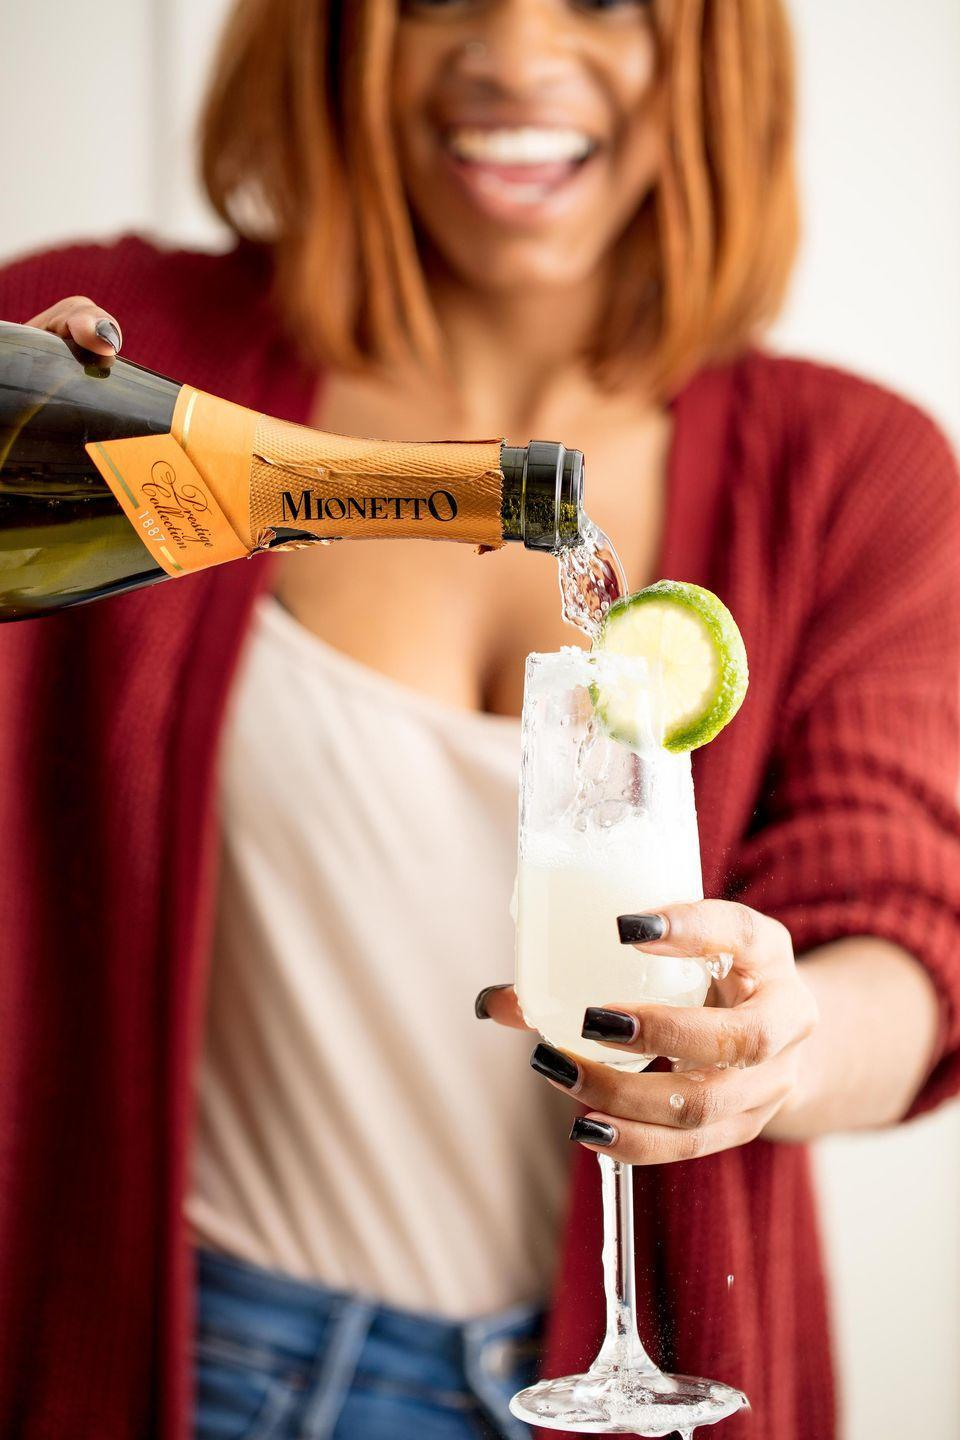 """<p>This margarita gets a festive boost with the addition of your favorite bubbly.</p><p>Get the recipe from <a href=""""https://www.delish.com/cooking/recipe-ideas/recipes/a50633/champagne-margaritas-recipe/"""" rel=""""nofollow noopener"""" target=""""_blank"""" data-ylk=""""slk:Delish"""" class=""""link rapid-noclick-resp"""">Delish</a>.</p>"""